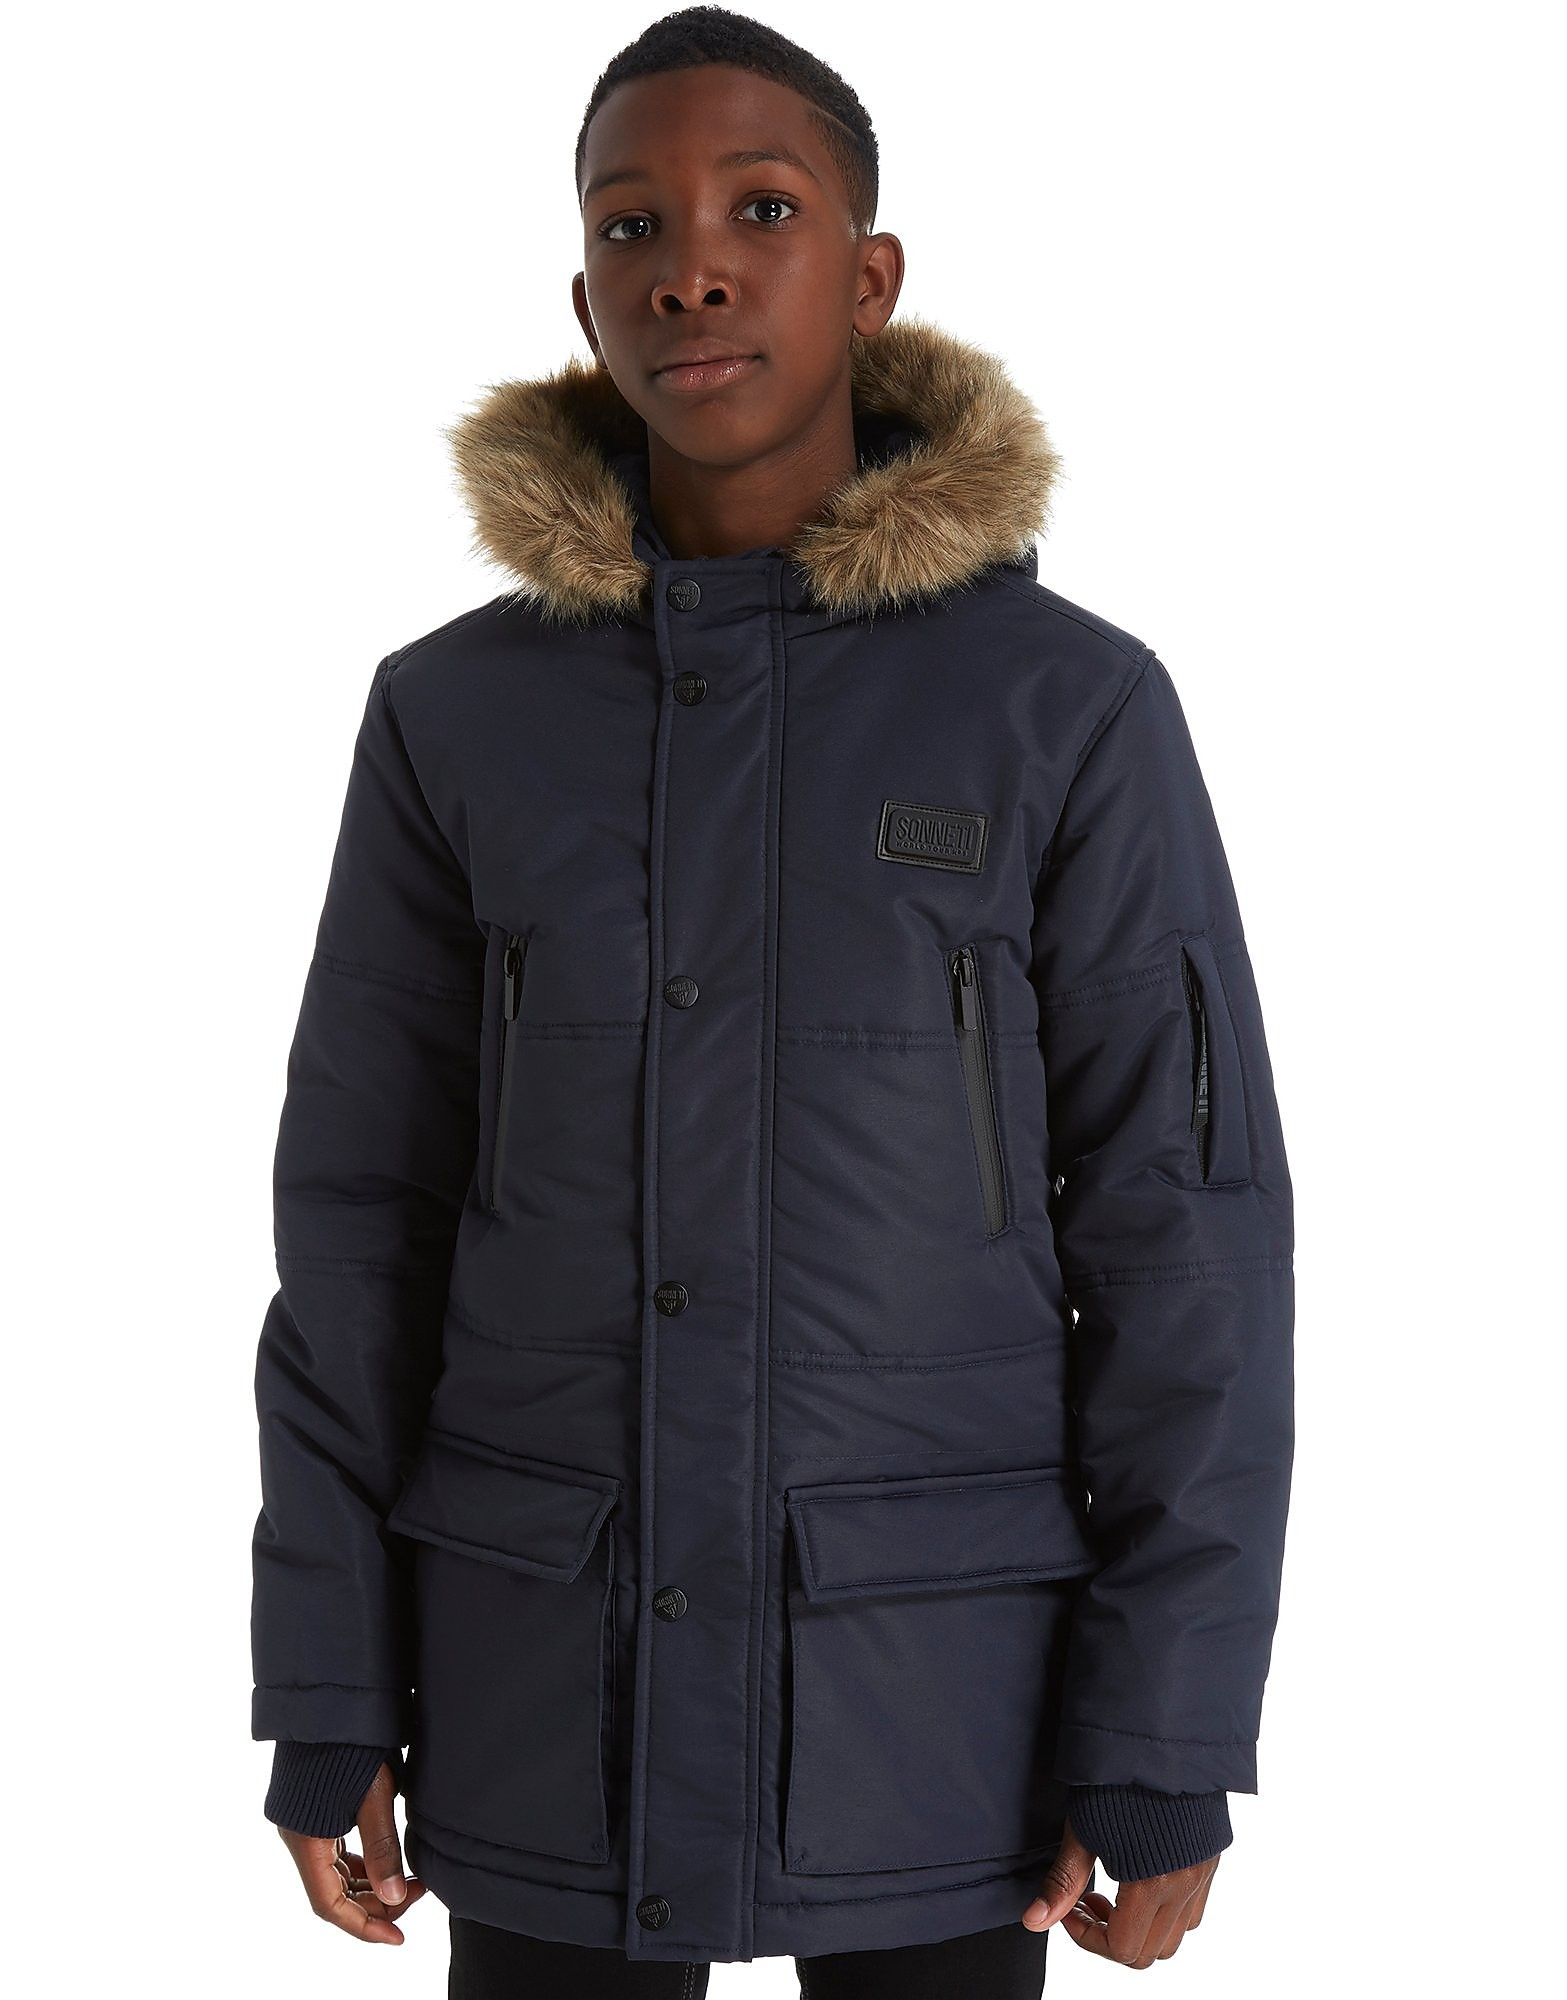 Sonneti Command Jacket Kinderen